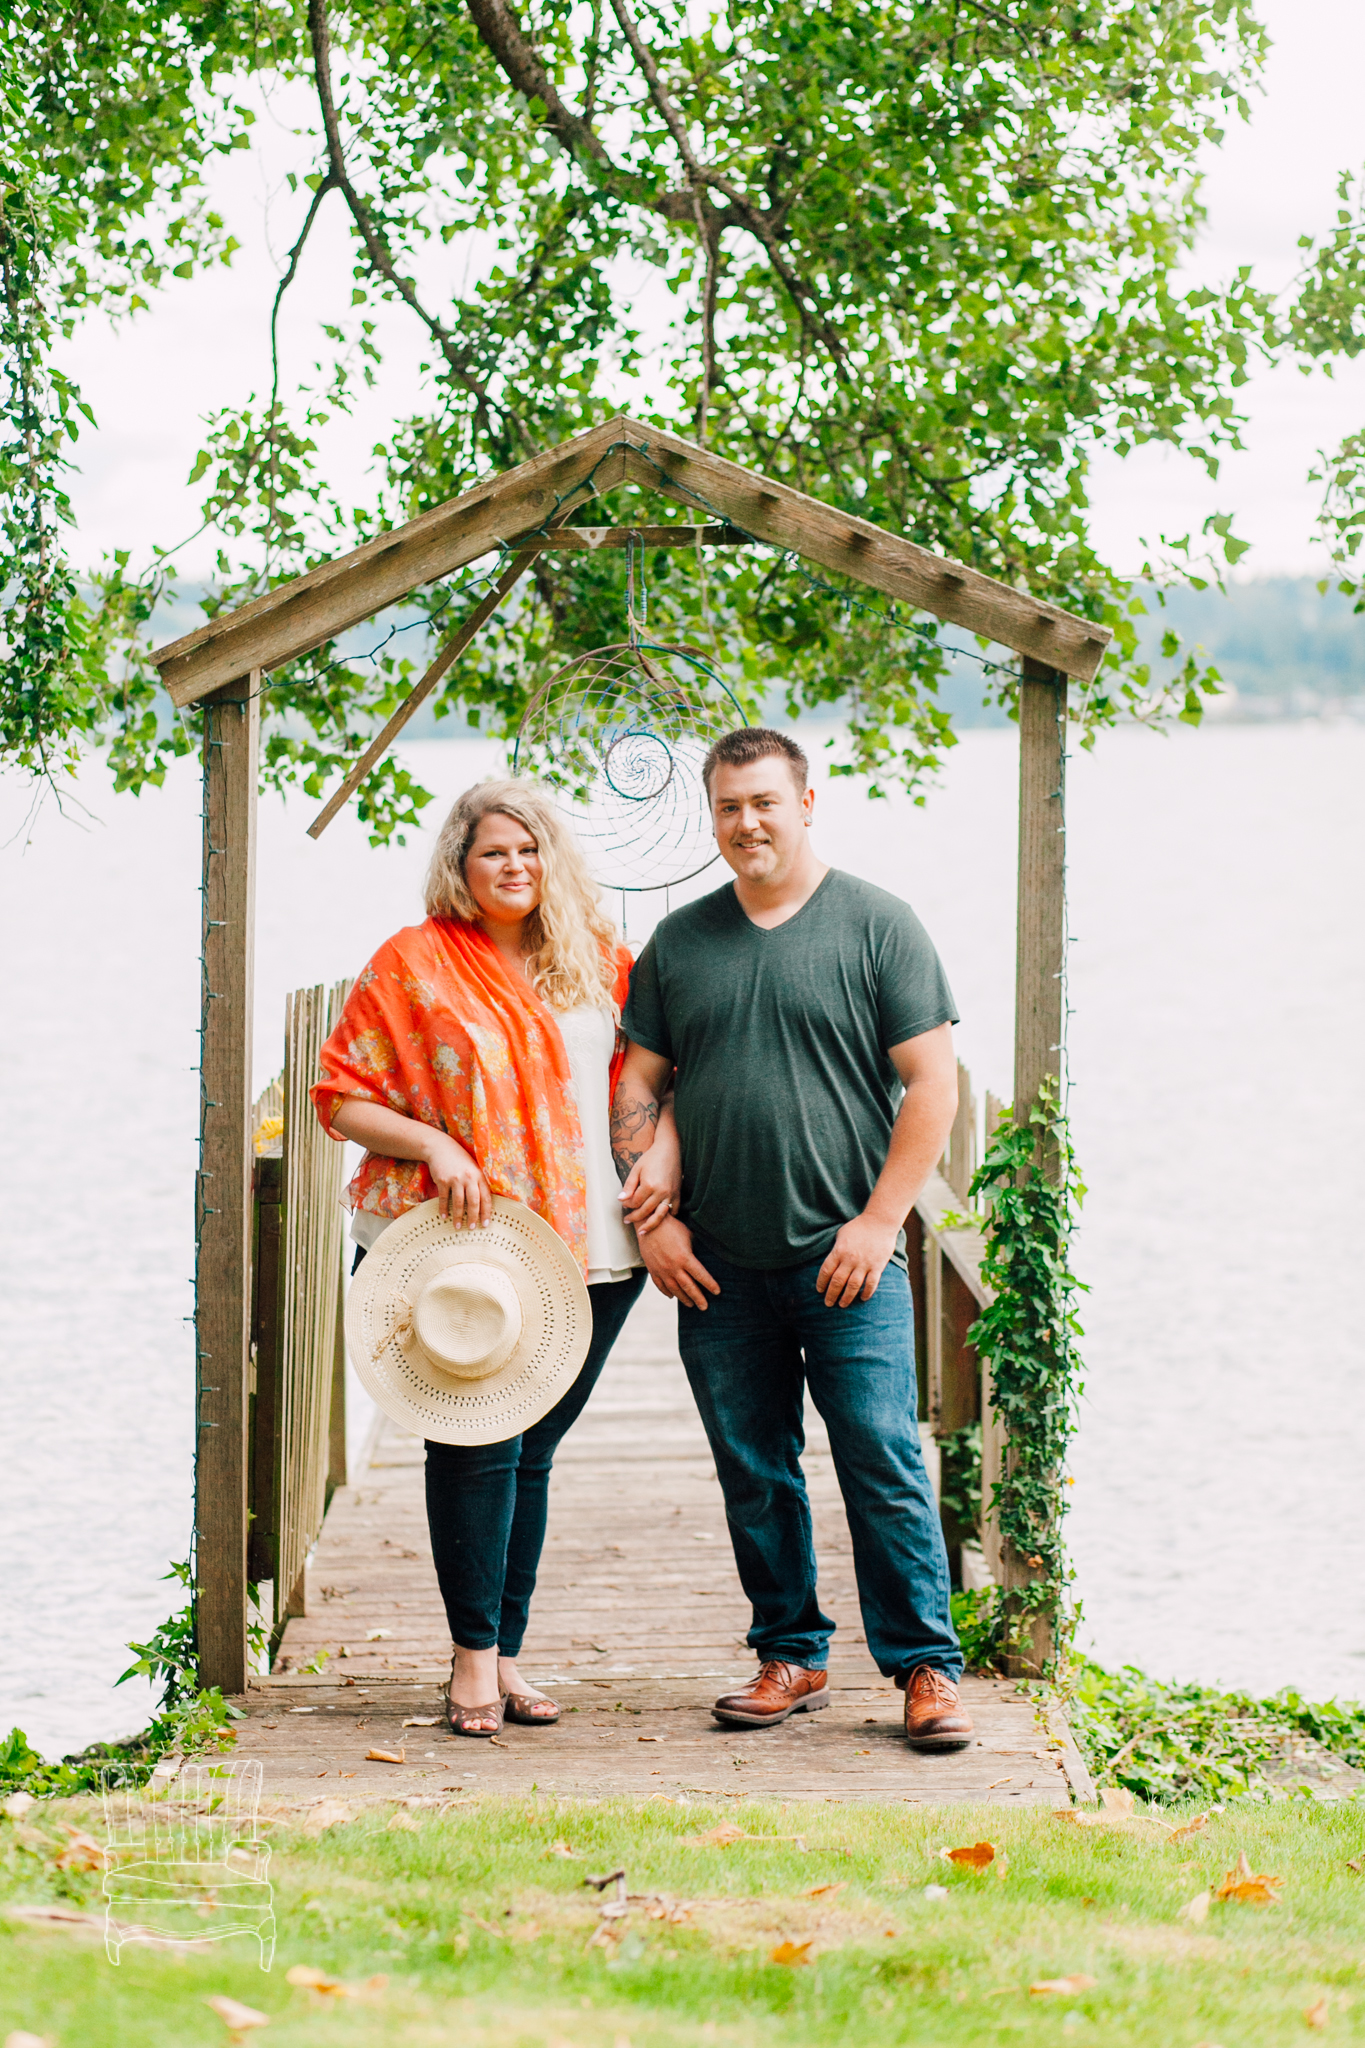 seattle-engagement-photographer-lake-washington-katheryn-moran-ashley-zach-8.jpg